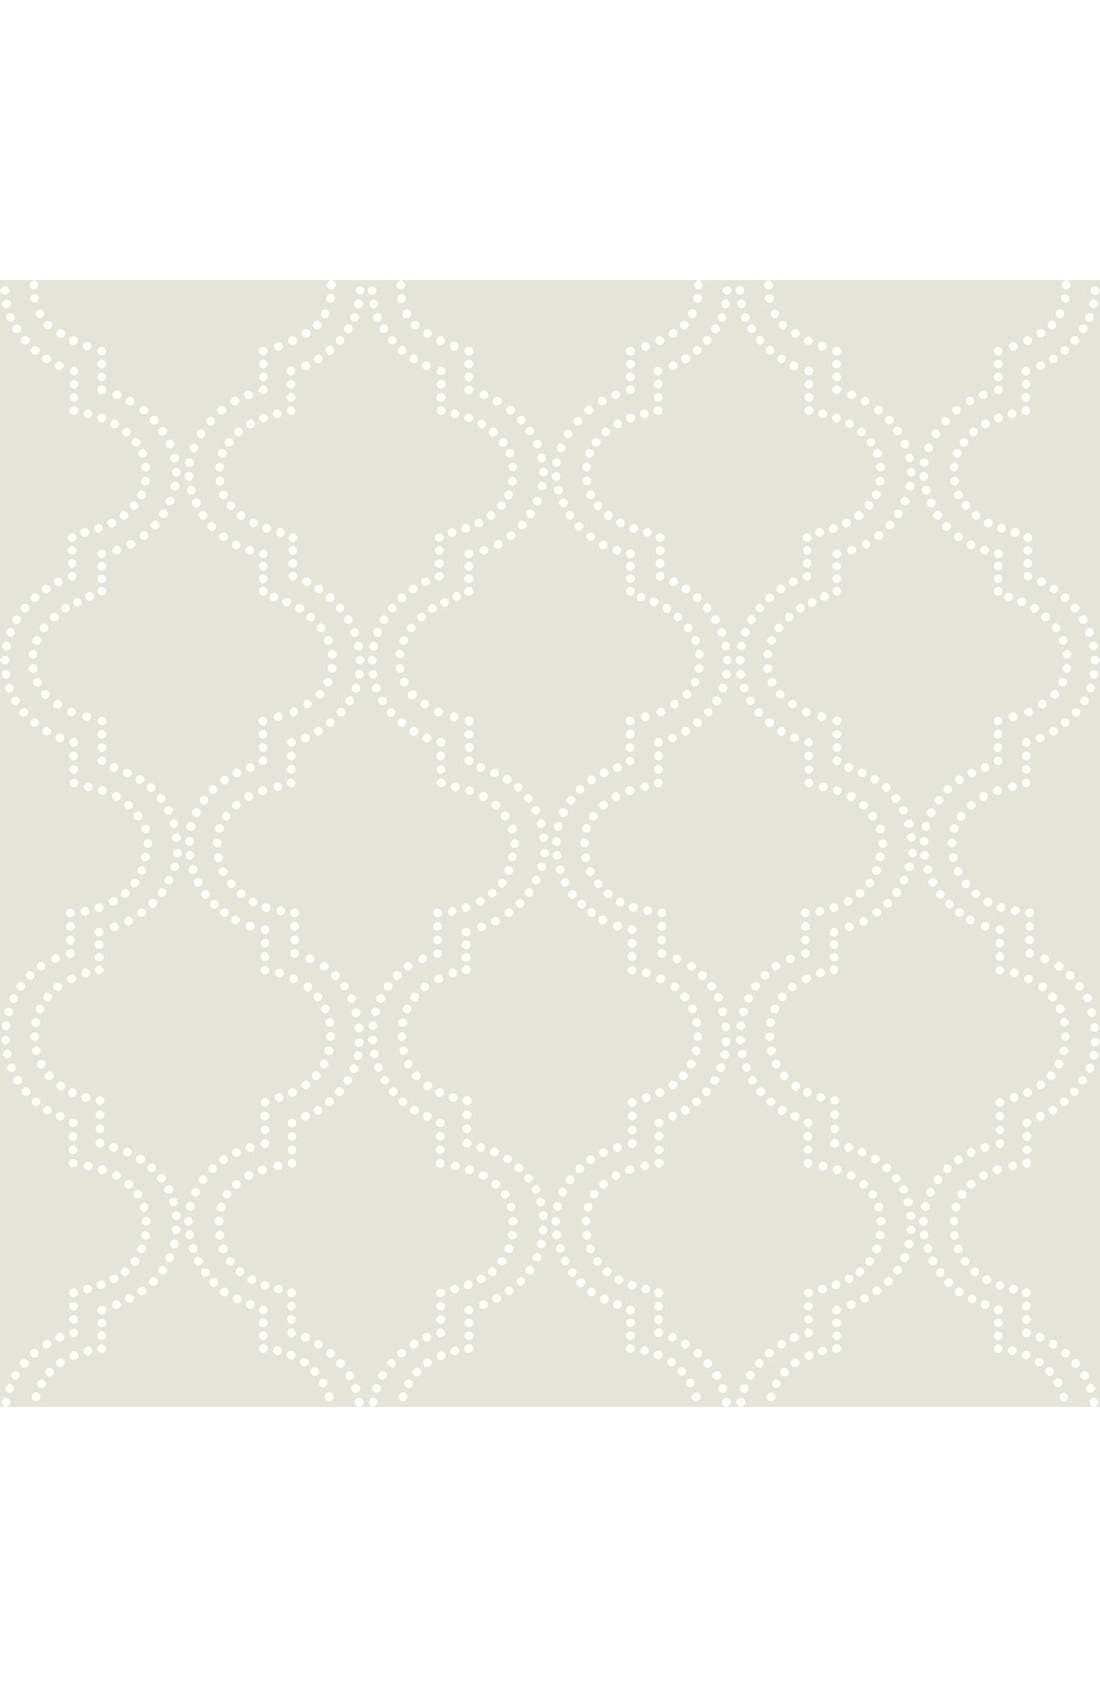 Alternate Image 1 Selected - Wallpops 'Quatrefoil'  Peel & Stick Vinyl Wallpaper